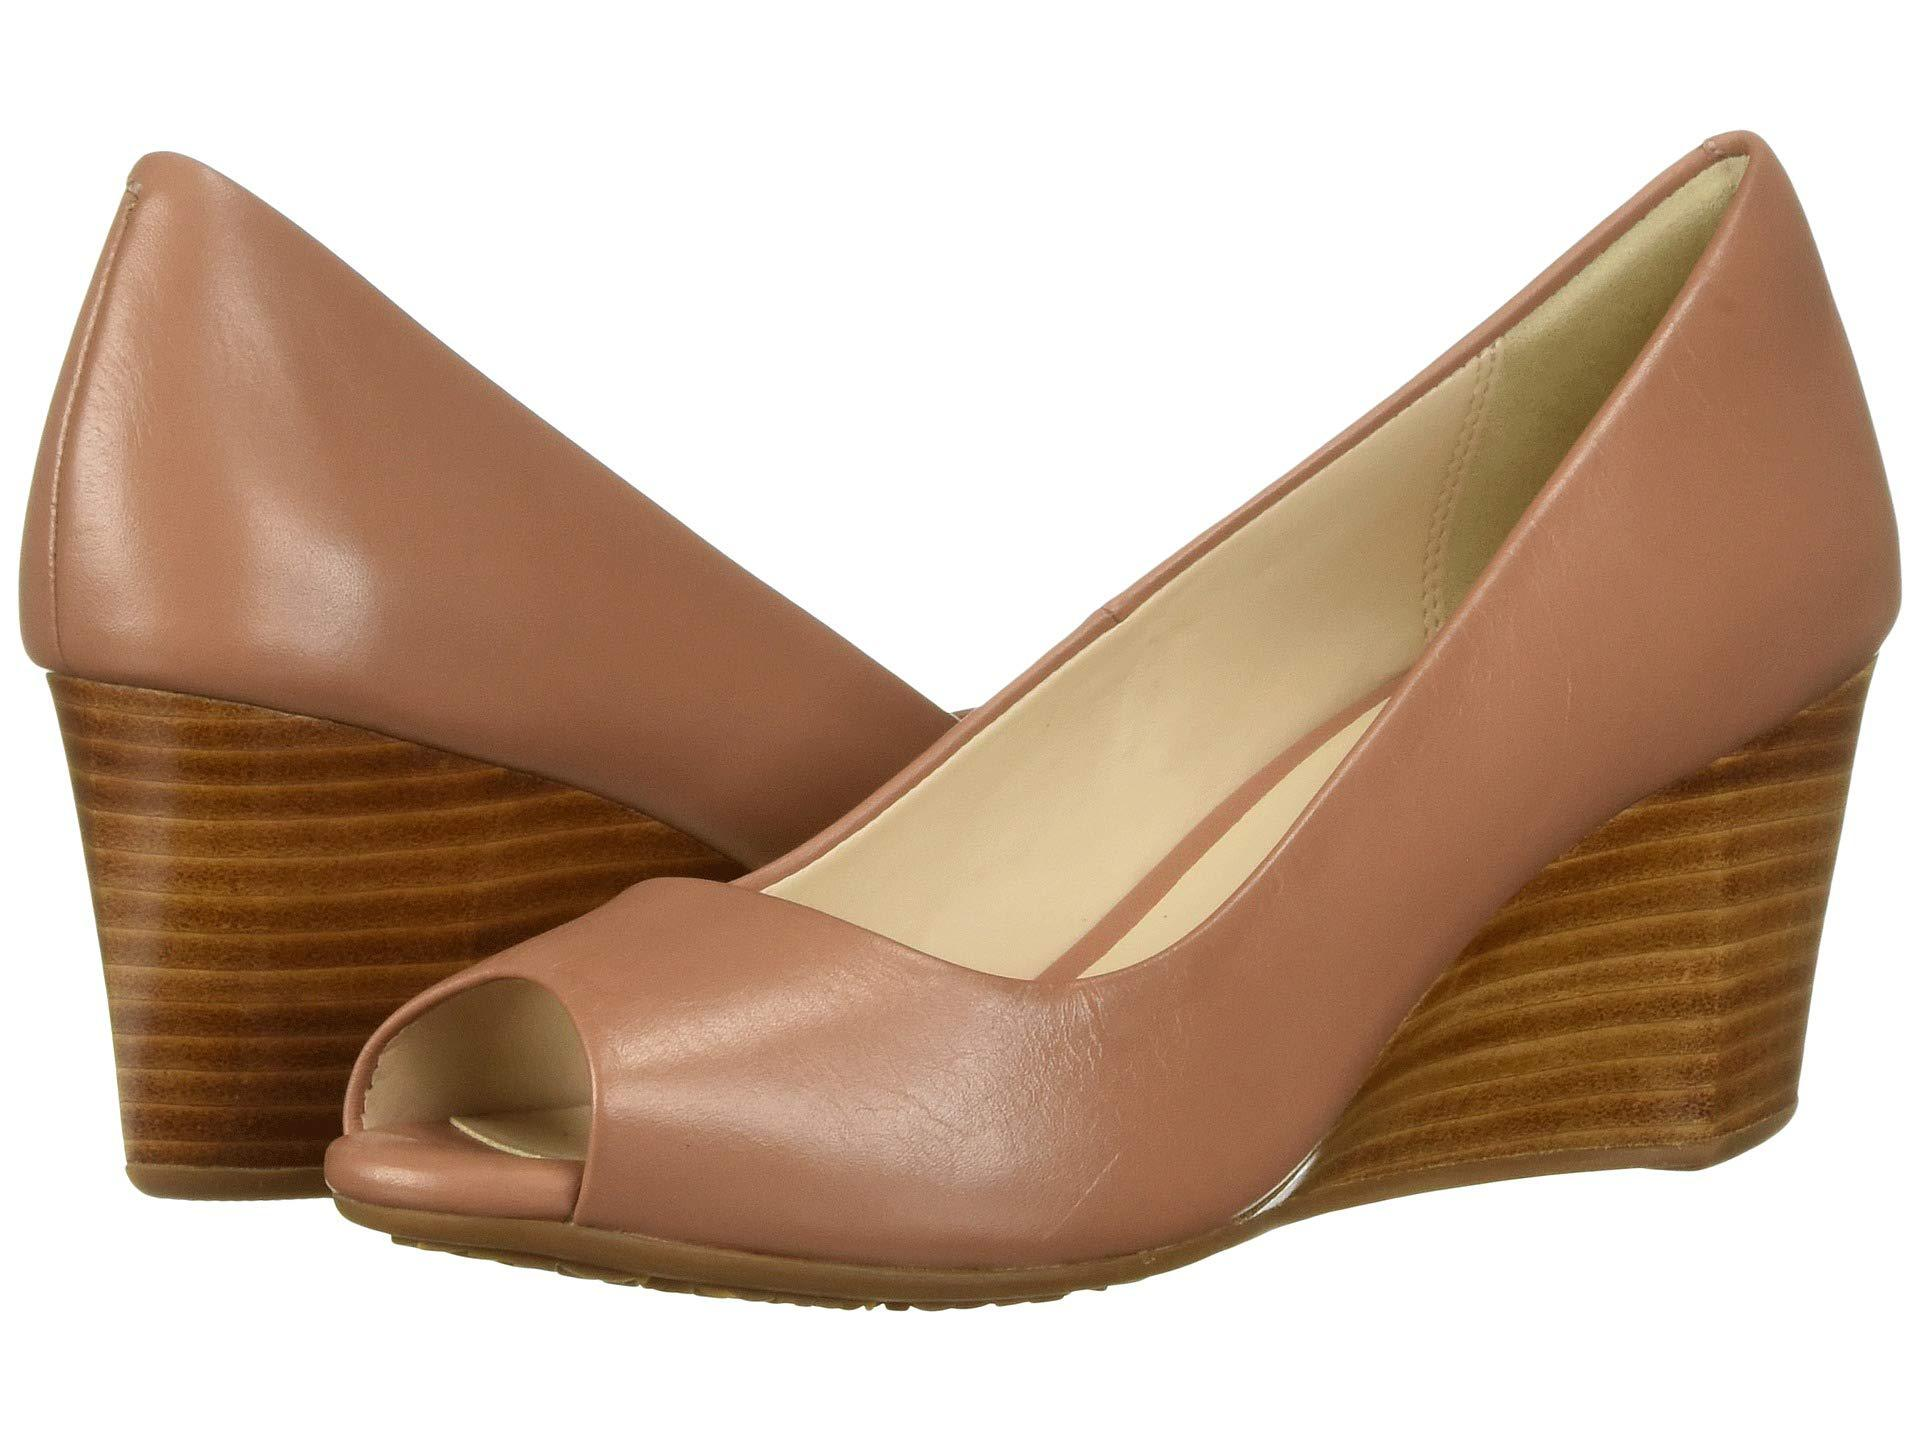 dcc7e49707f Lyst - Cole Haan Sadie Open Toe Wedge 65mm (nude Patent) Women s ...